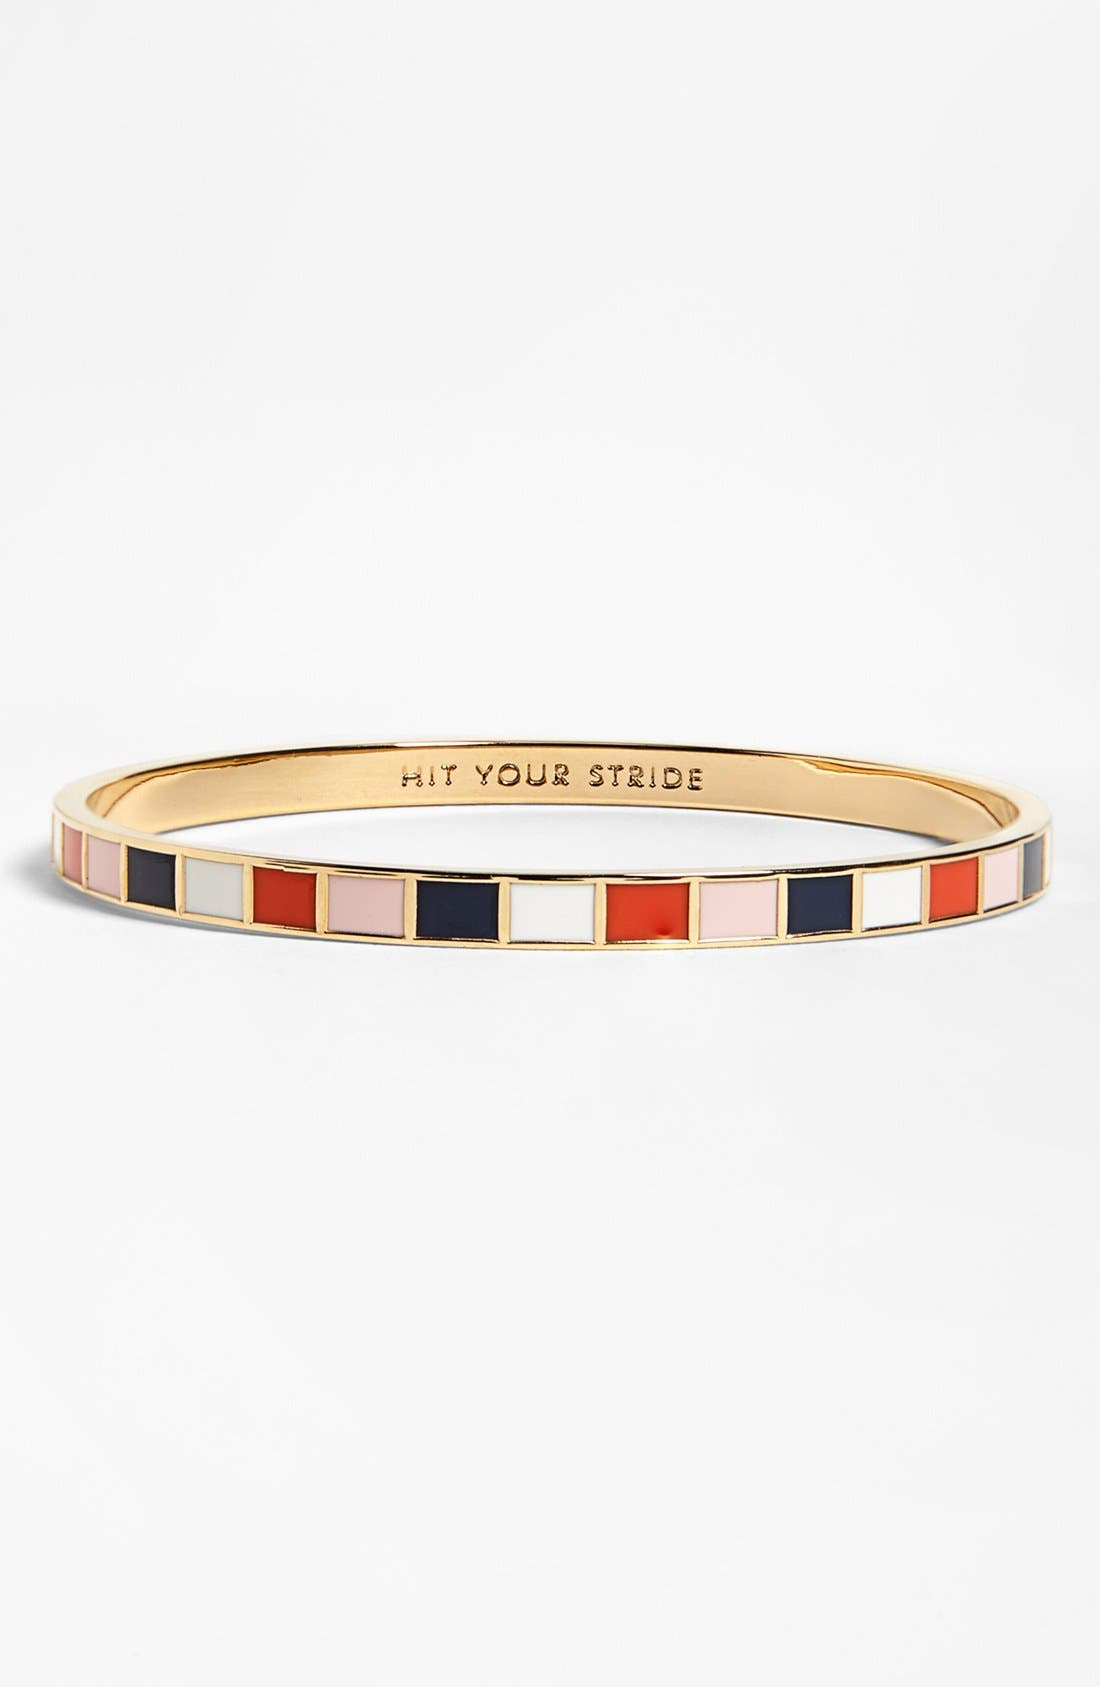 Main Image - kate spade new york 'idiom - hit your stride' bangle